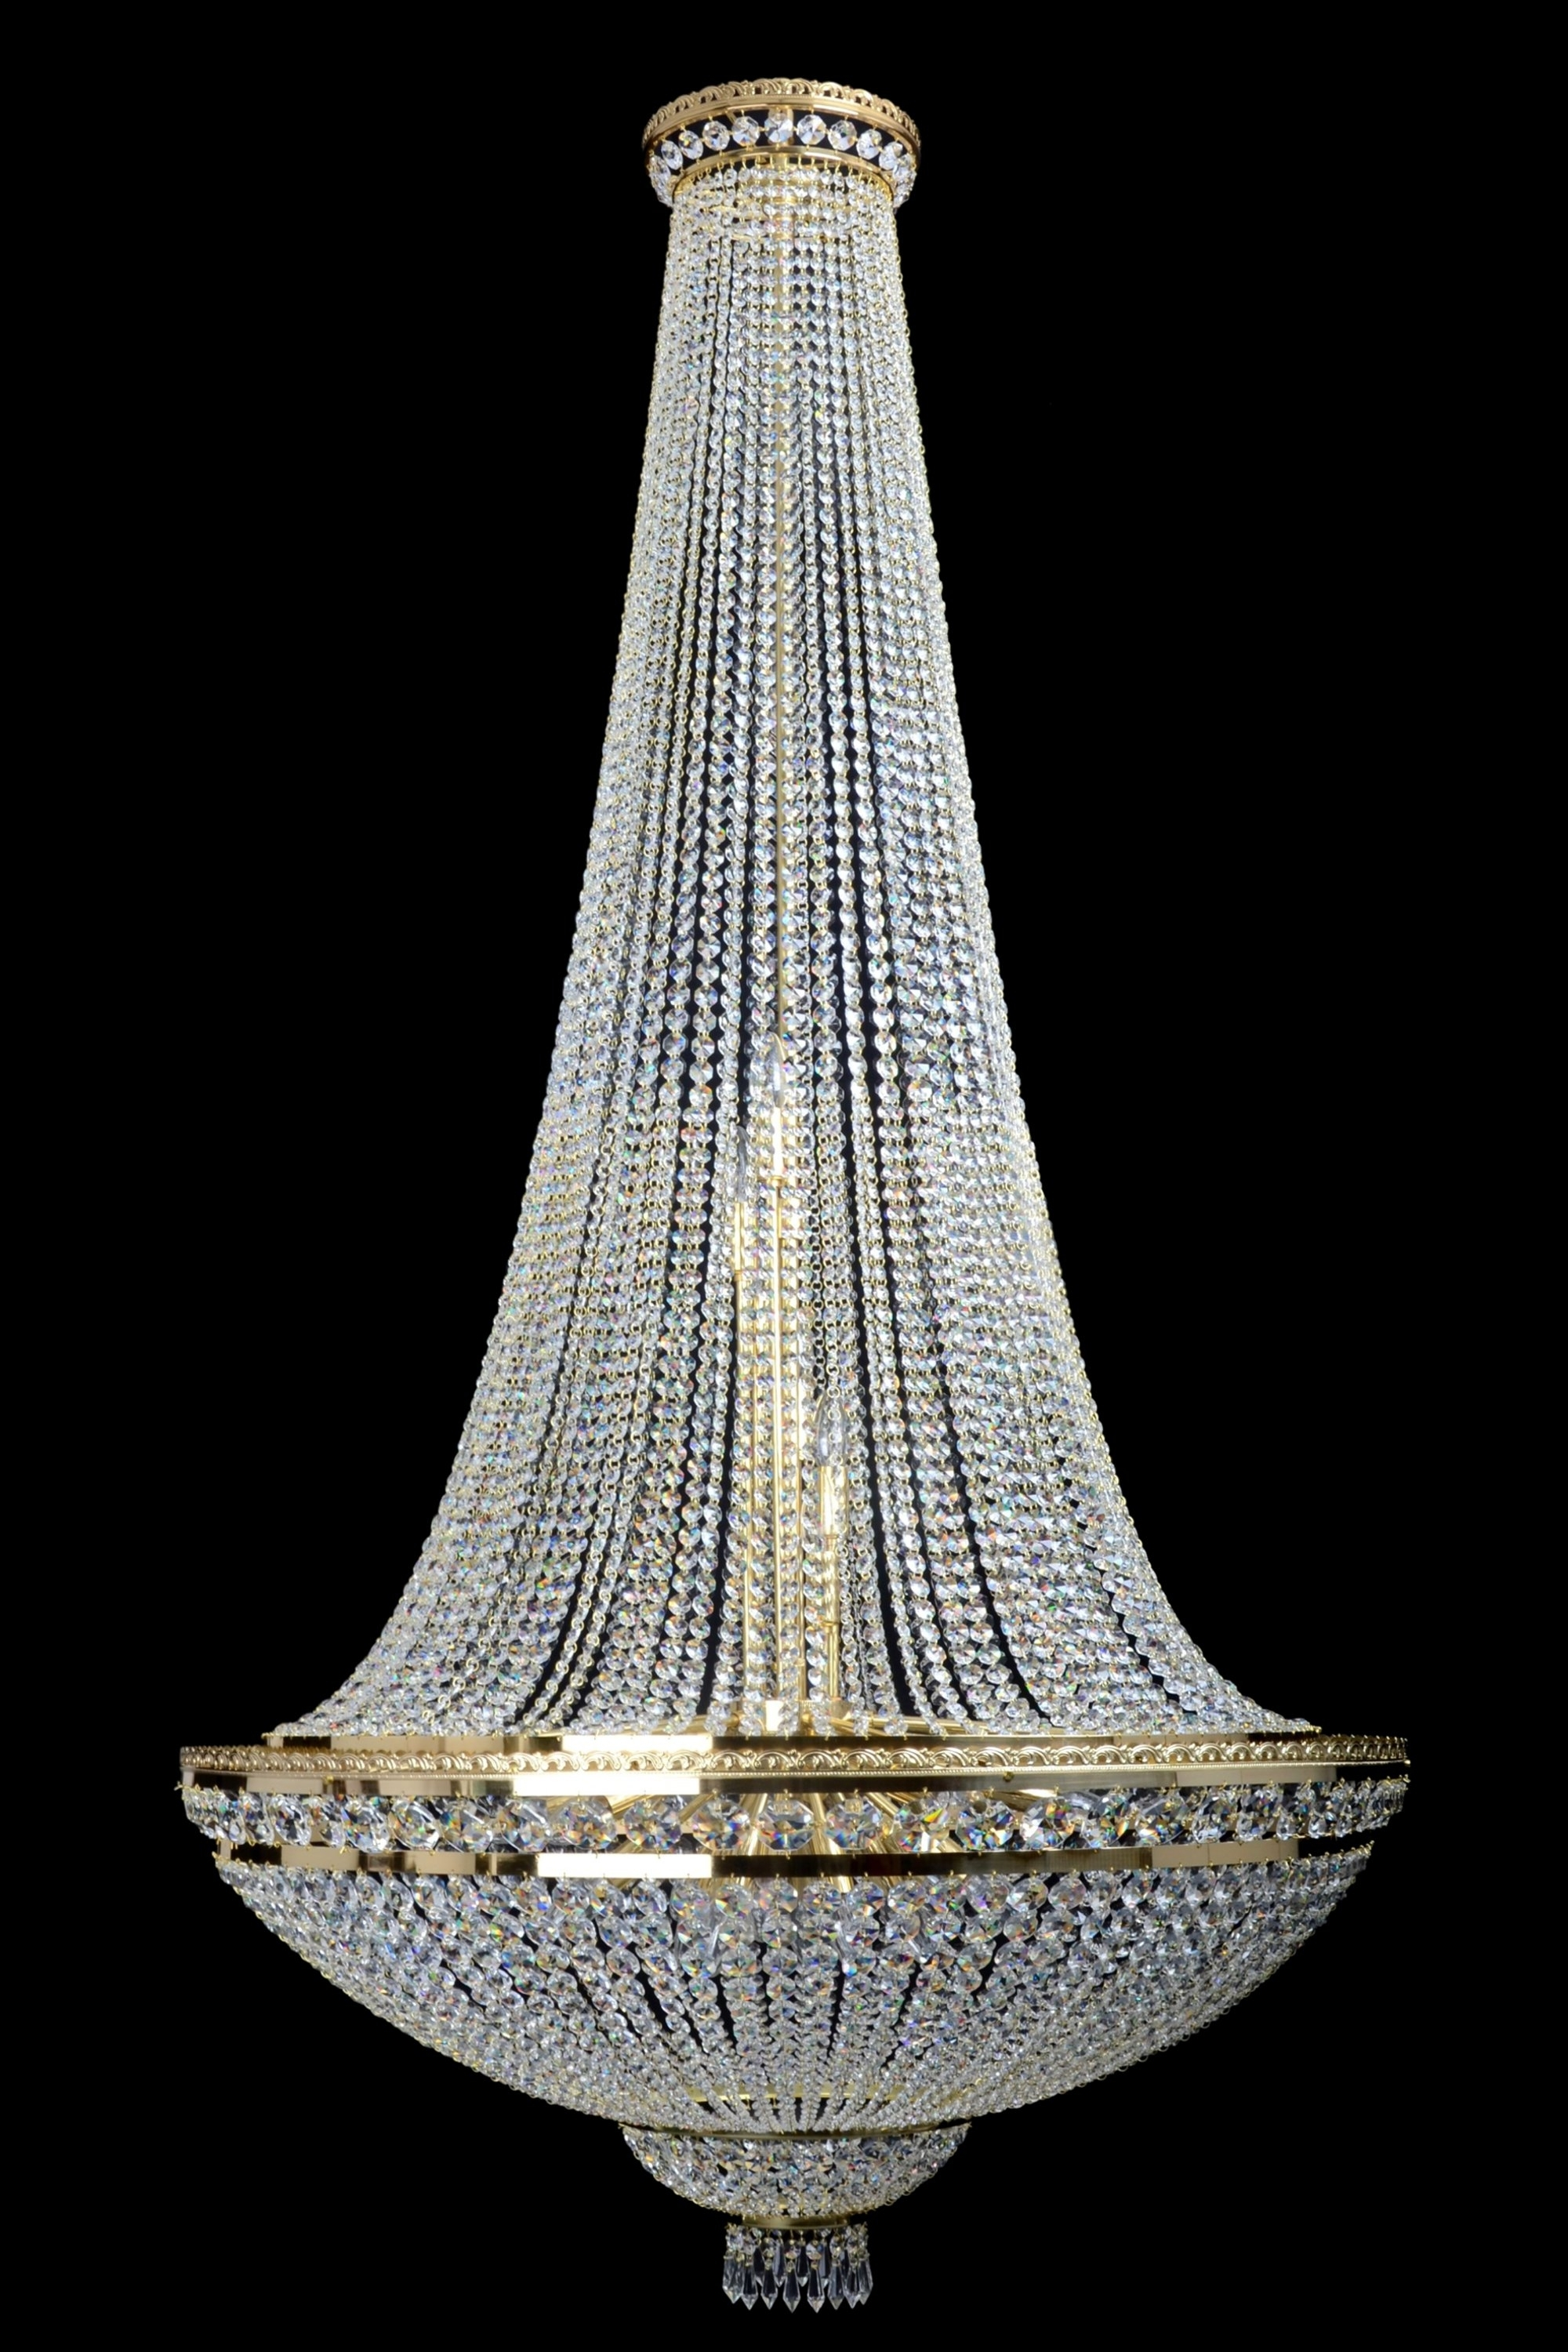 Traditional Crystal Chandeliers Intended For Most Recently Released Ccb7150 21 Basket Style Empire Chandelier – The Crystal Chandelier (View 14 of 20)